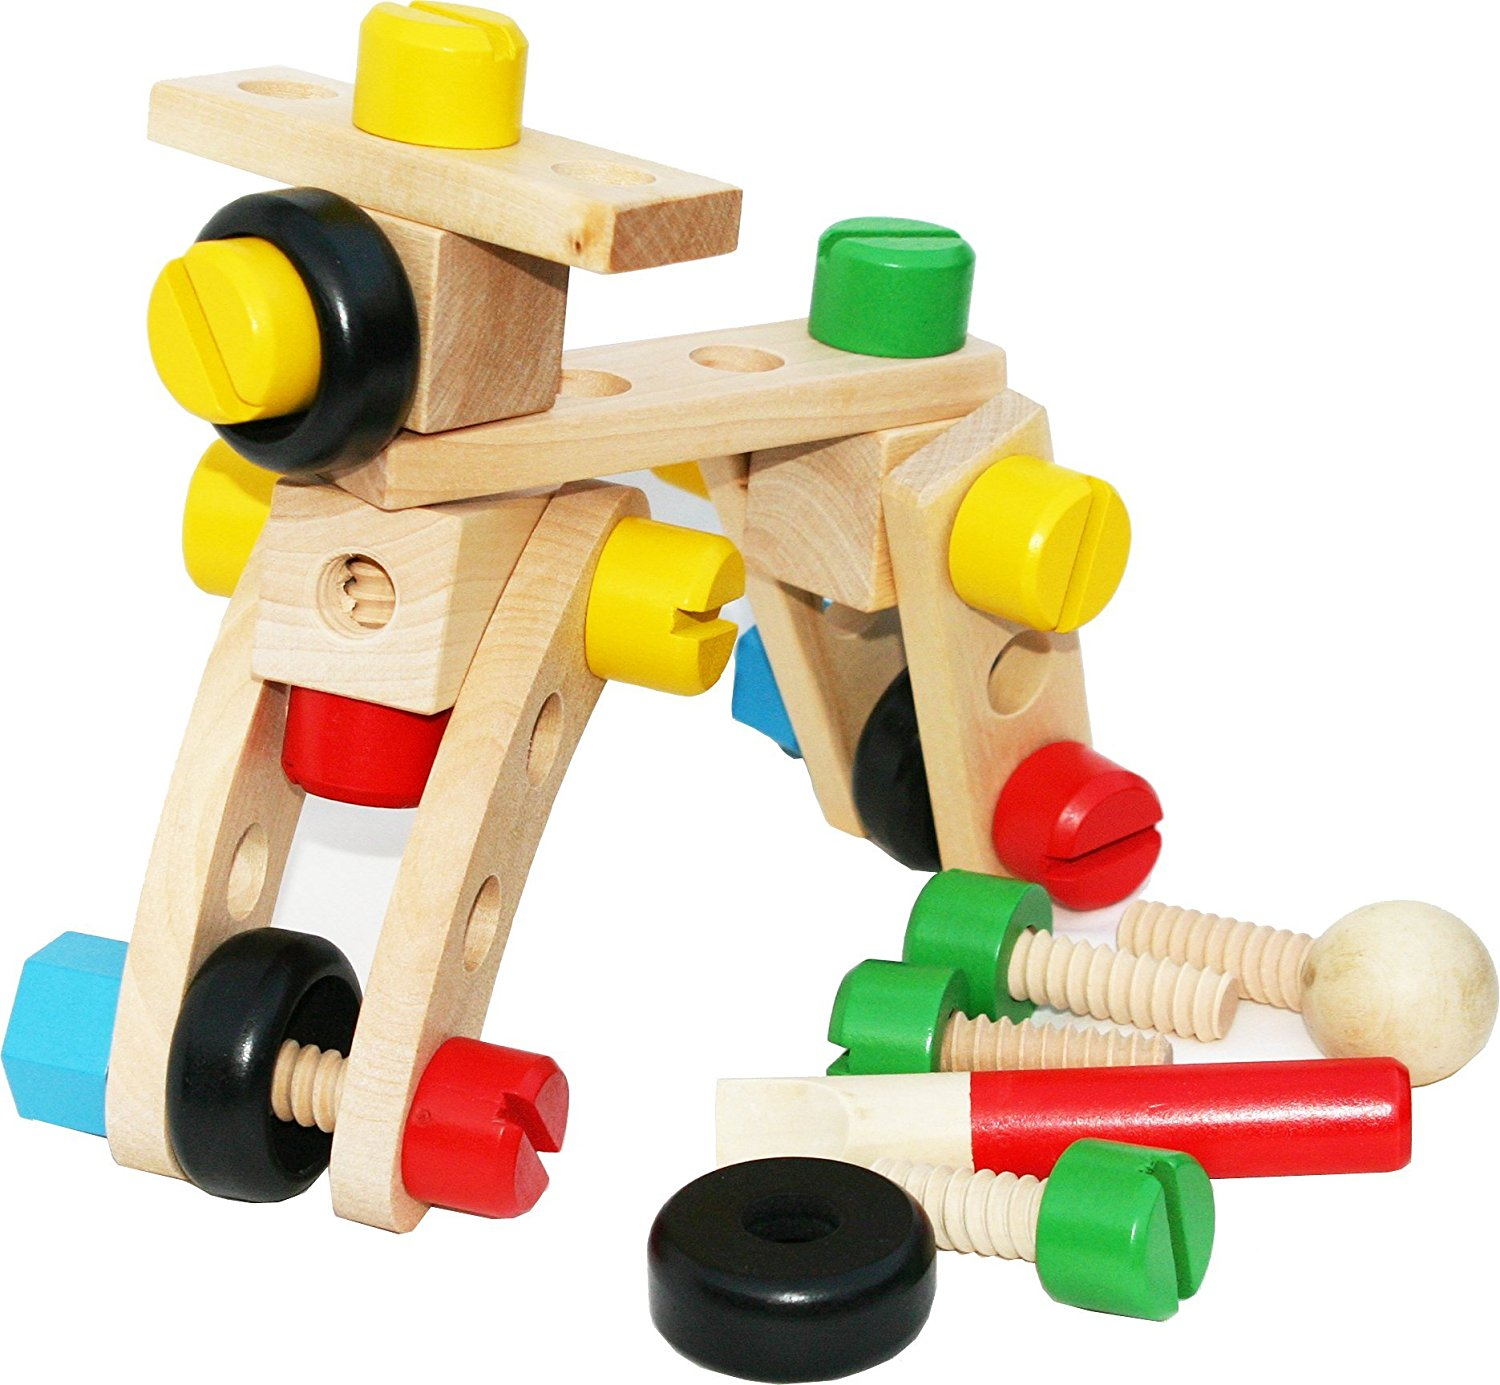 Amazon.com: Toys of Wood Oxford Wooden Nut and Bolt Building Blocks ...